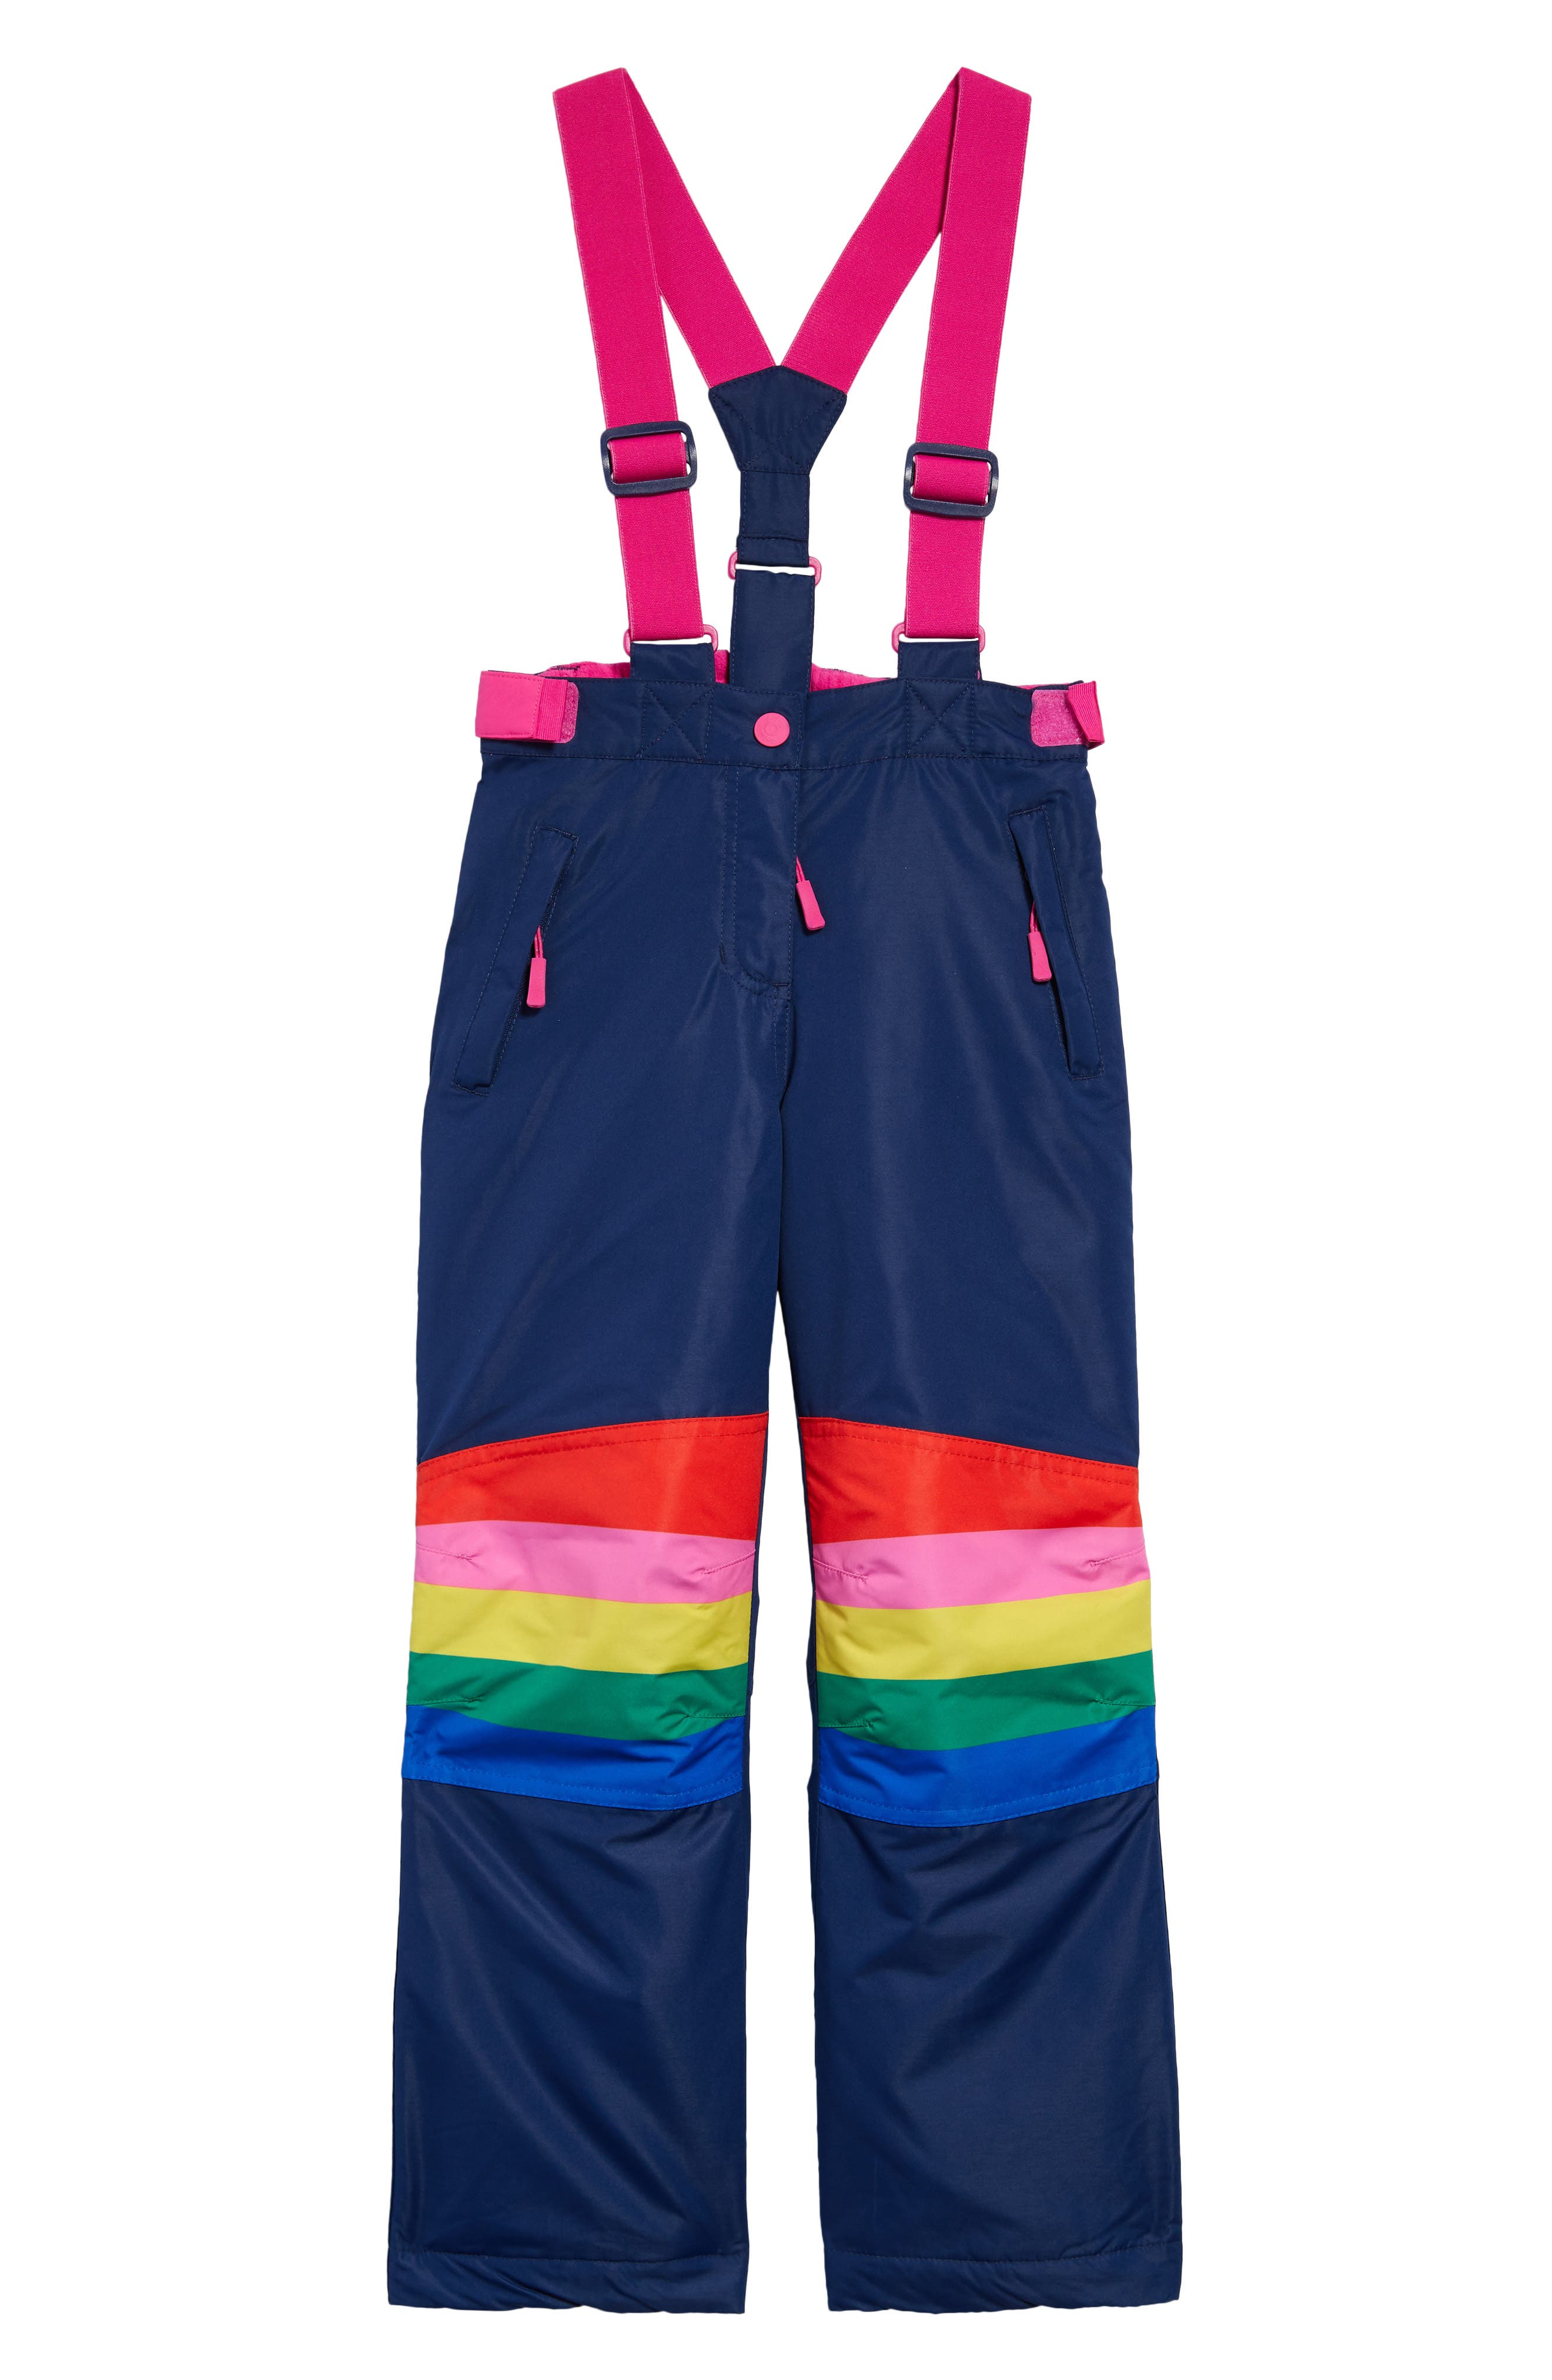 She\\\'ll love layering on snow days with these waterproof, insulated pants equipped with adjustable straps and cheery rainbows. Style Name: Mini Boden Kids\\\' All Weather Waterproof Suspender Pants (Toddler, Little Girl & Big Girl). Style Number: 6103072. Available in stores.